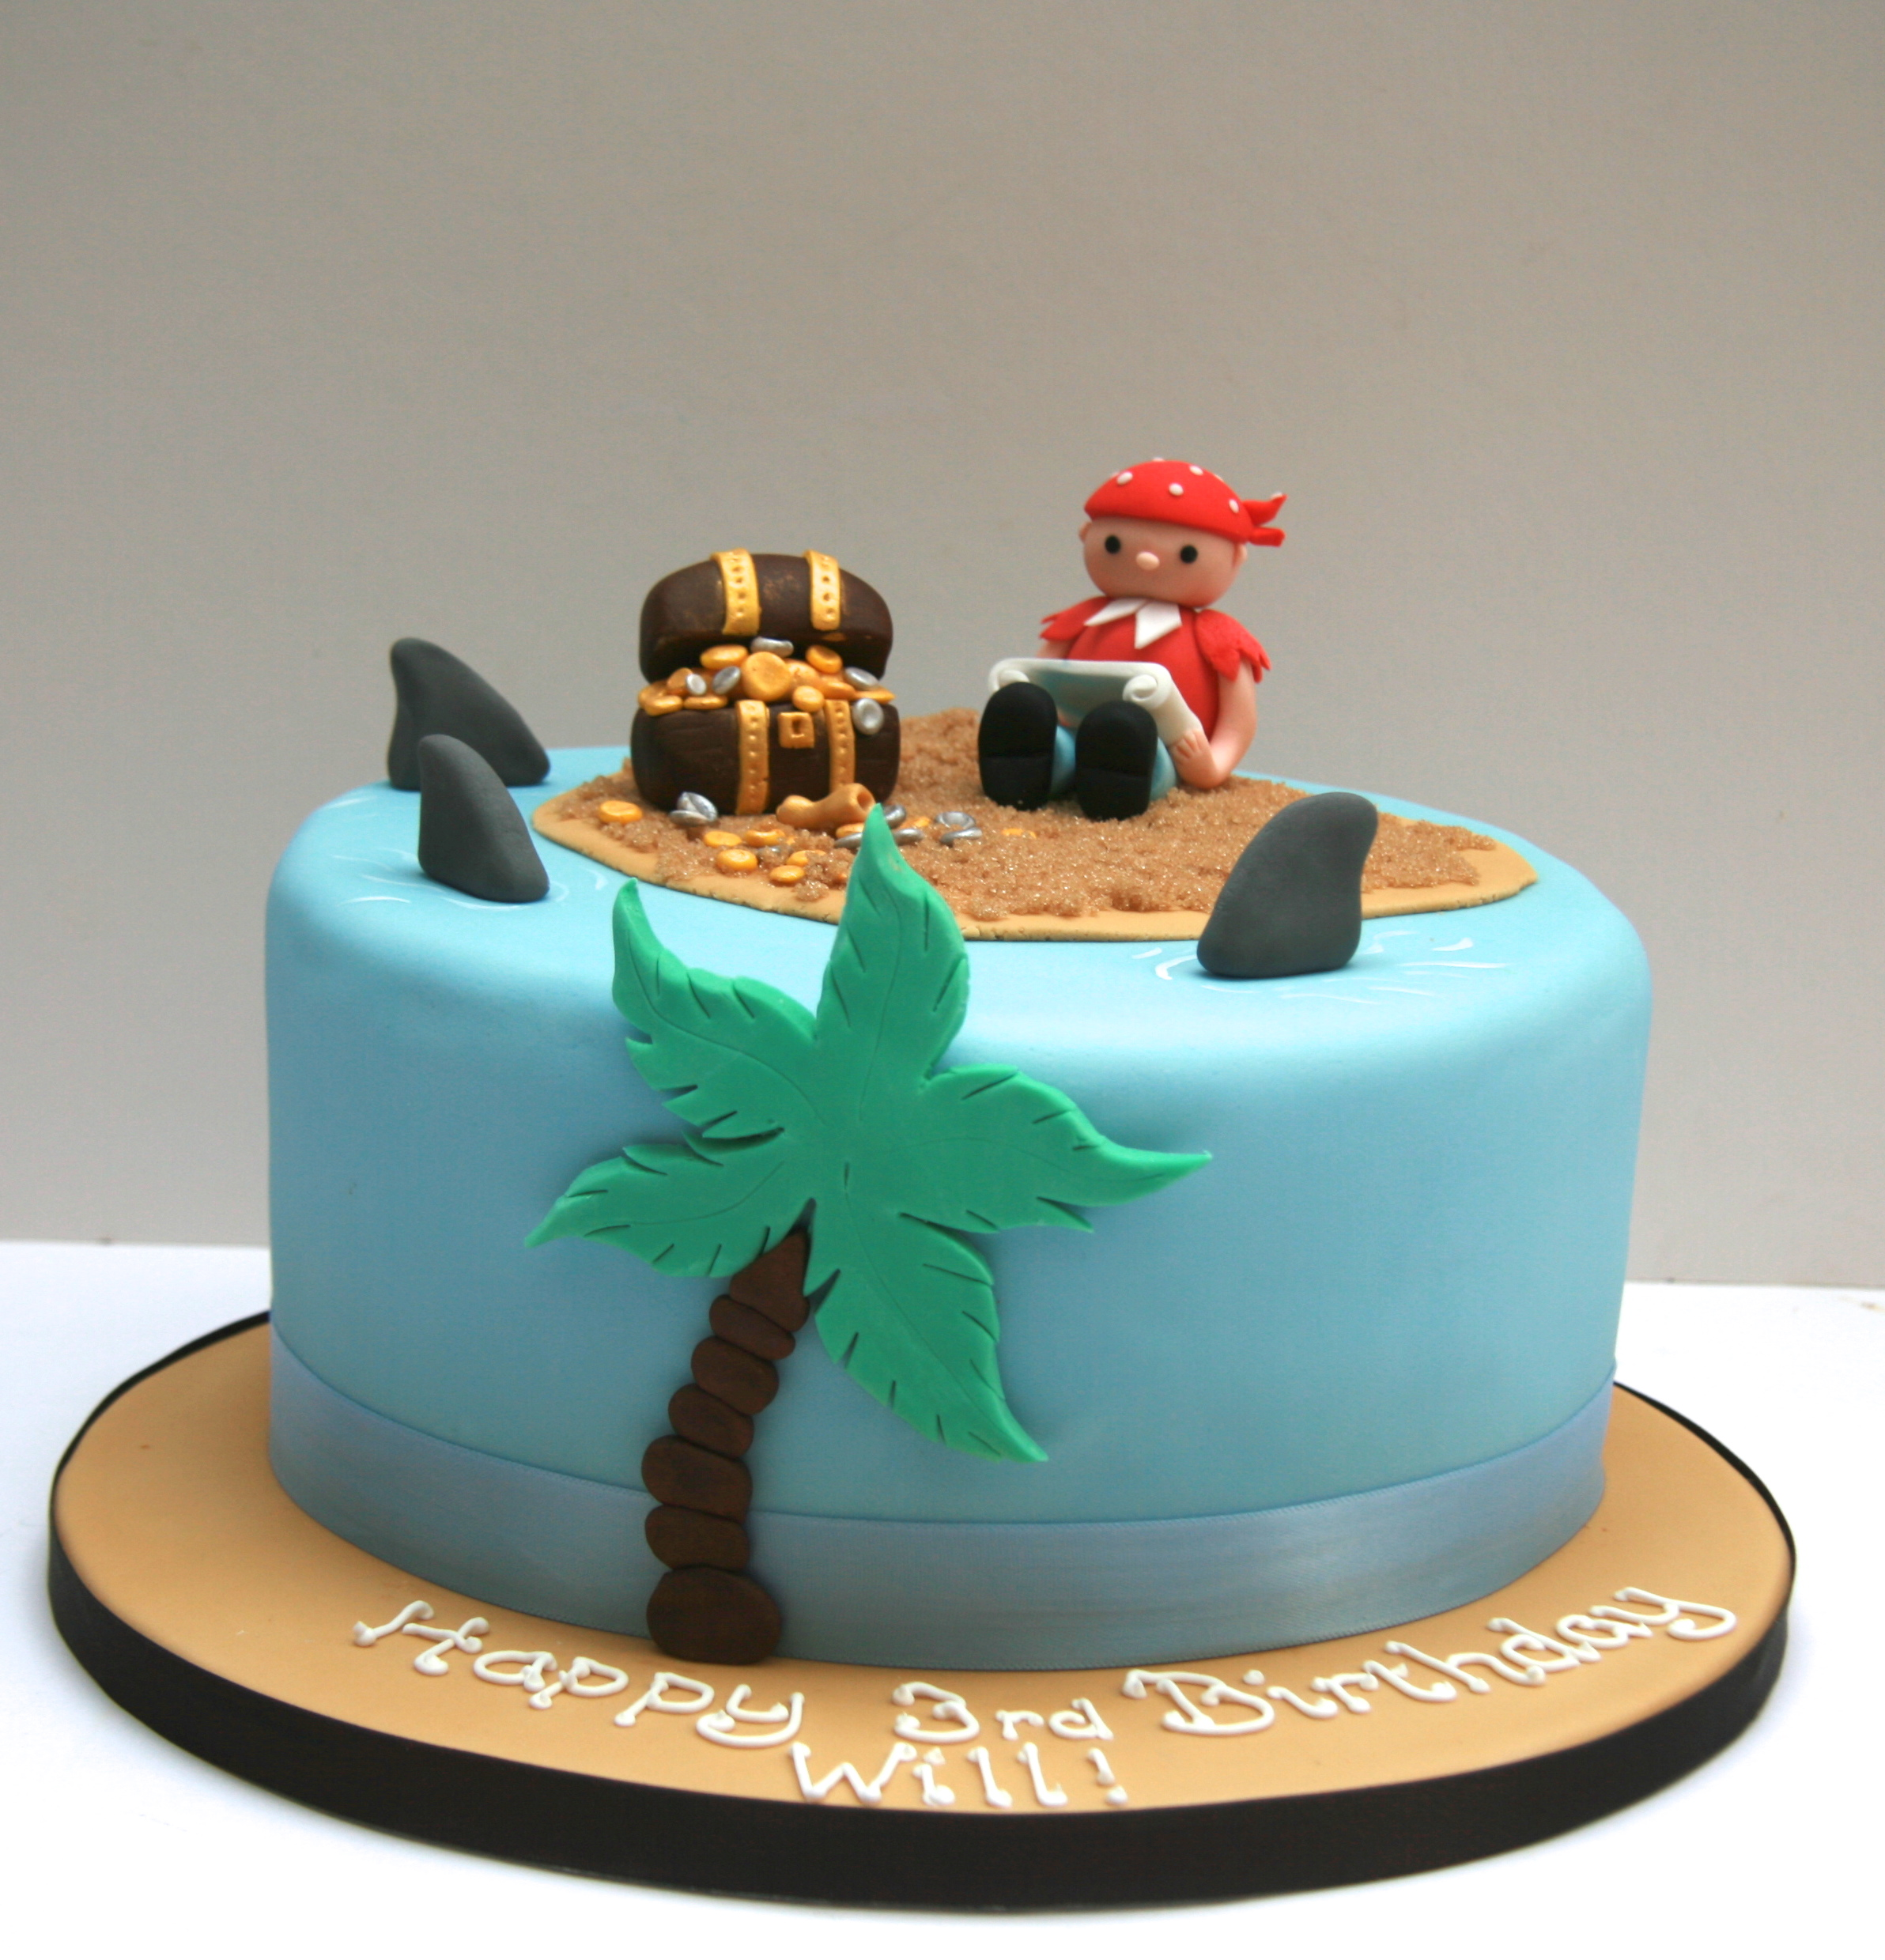 Pirate Birthday Cake London Etoile Bakery